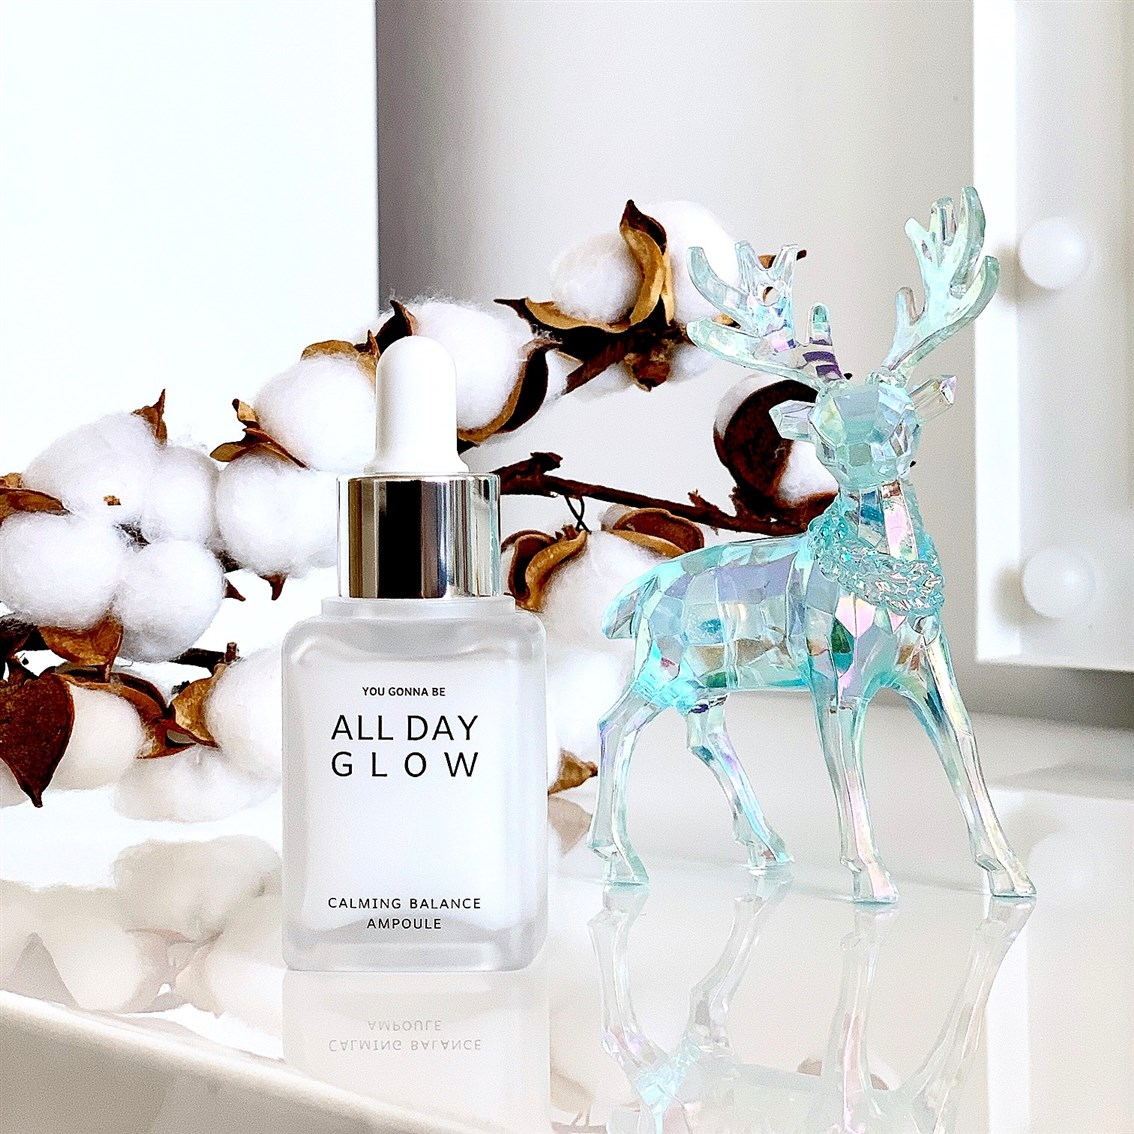 All Day Glow Calming Balance Ampoule blog